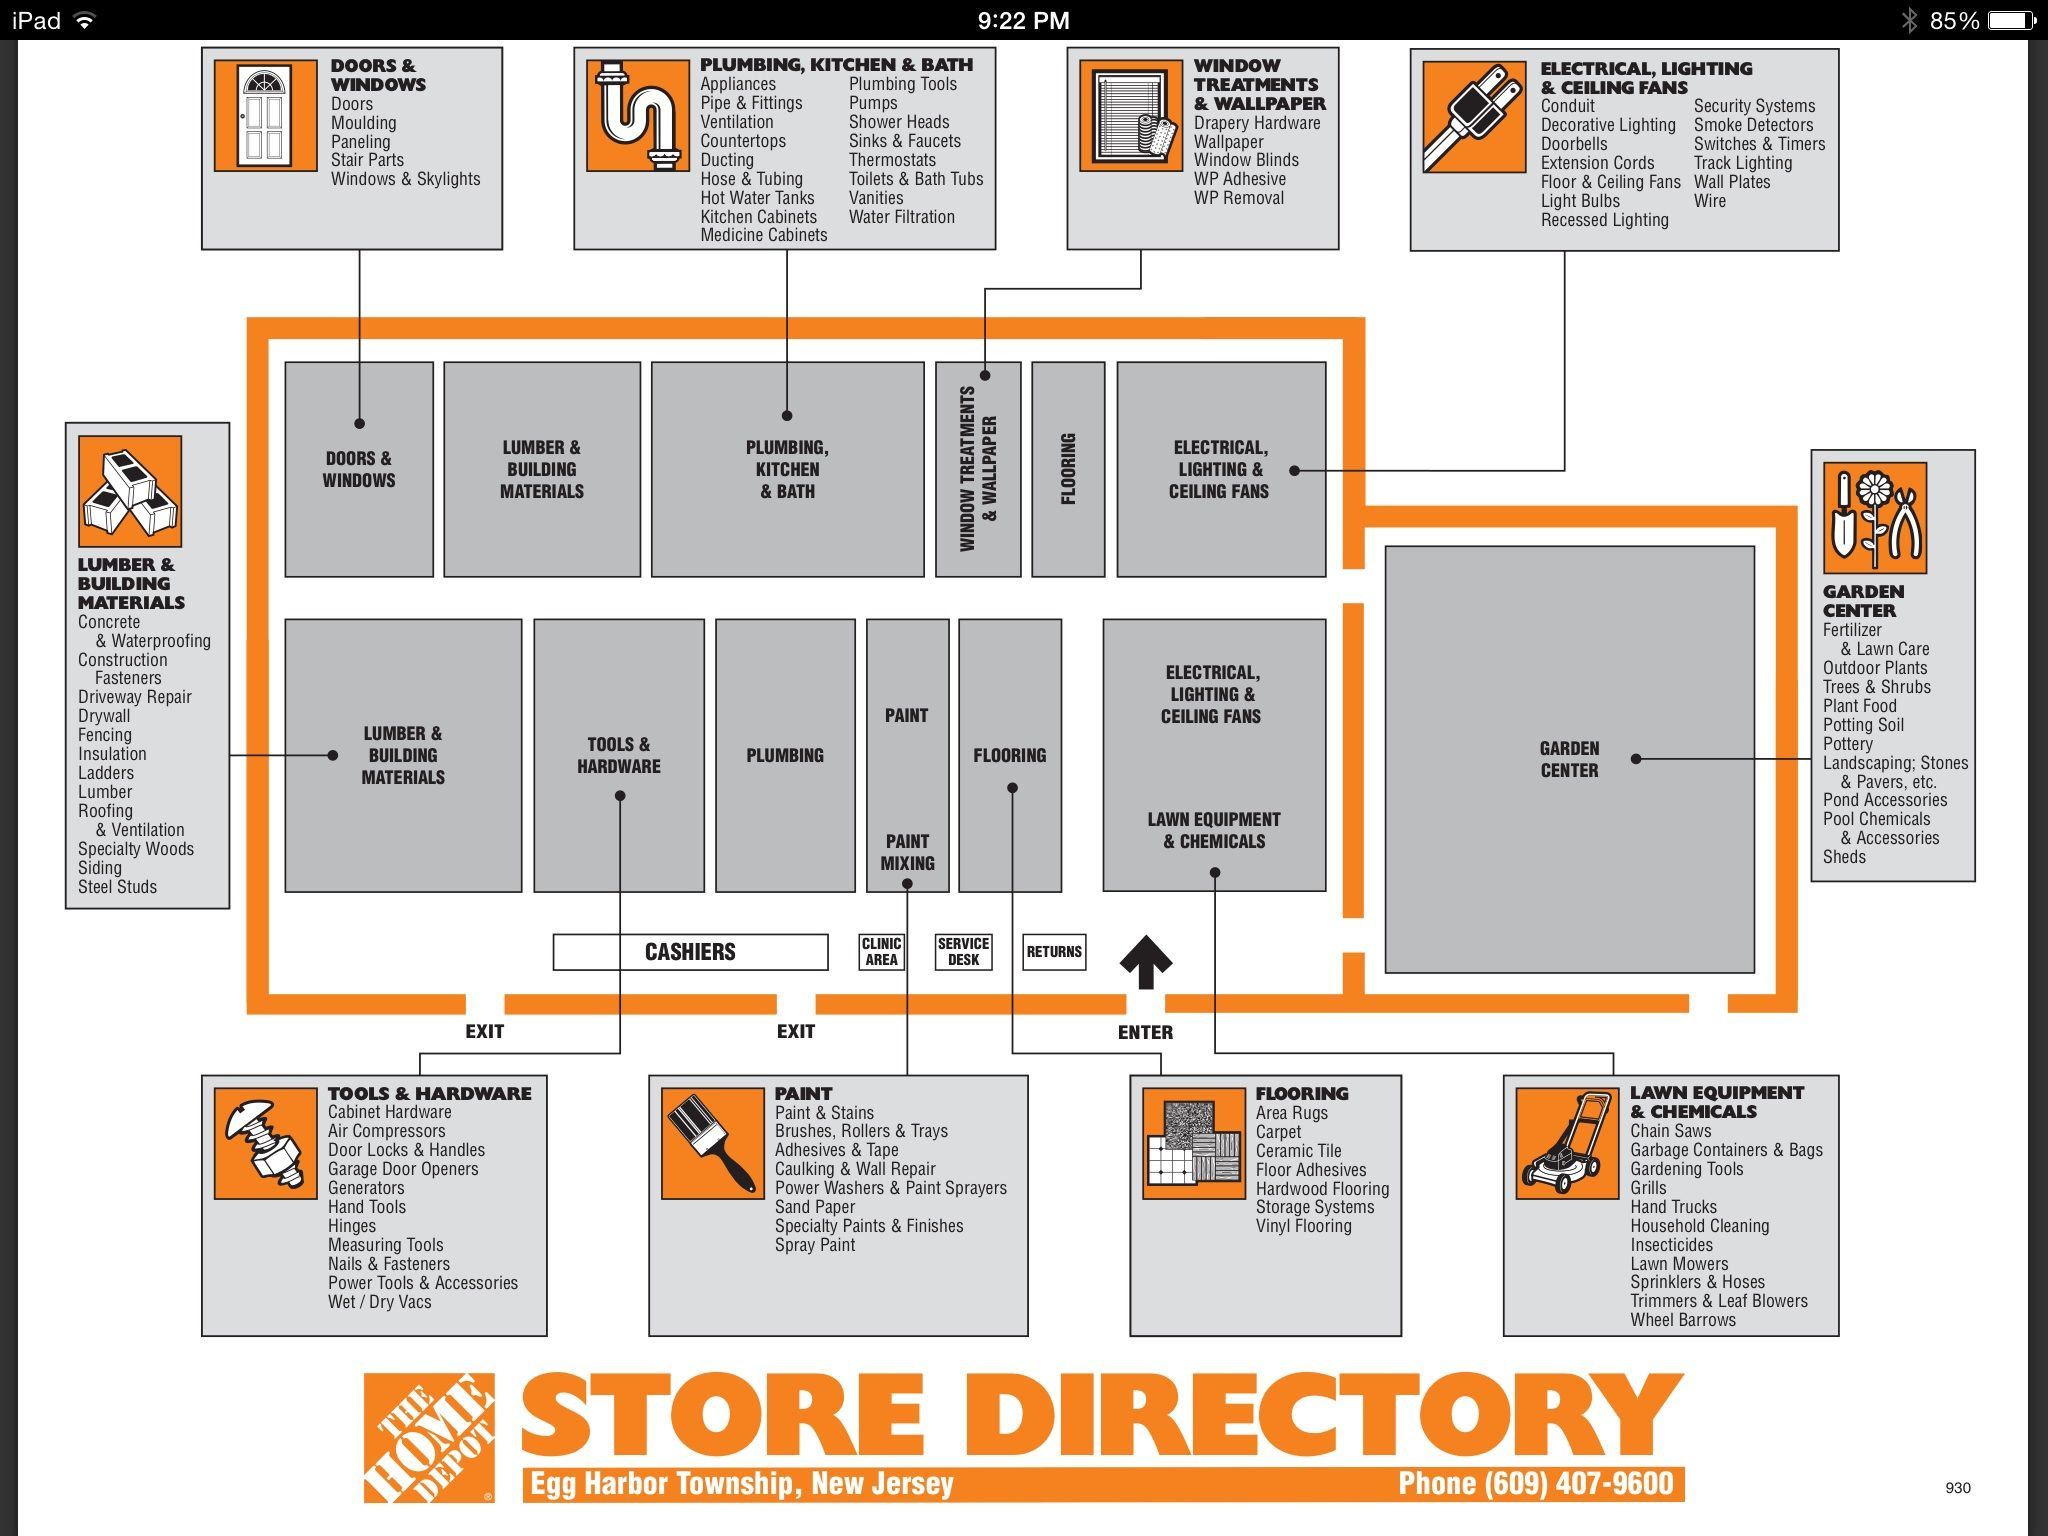 Home depot store directory eht nj house shopping list for Home depot home plans